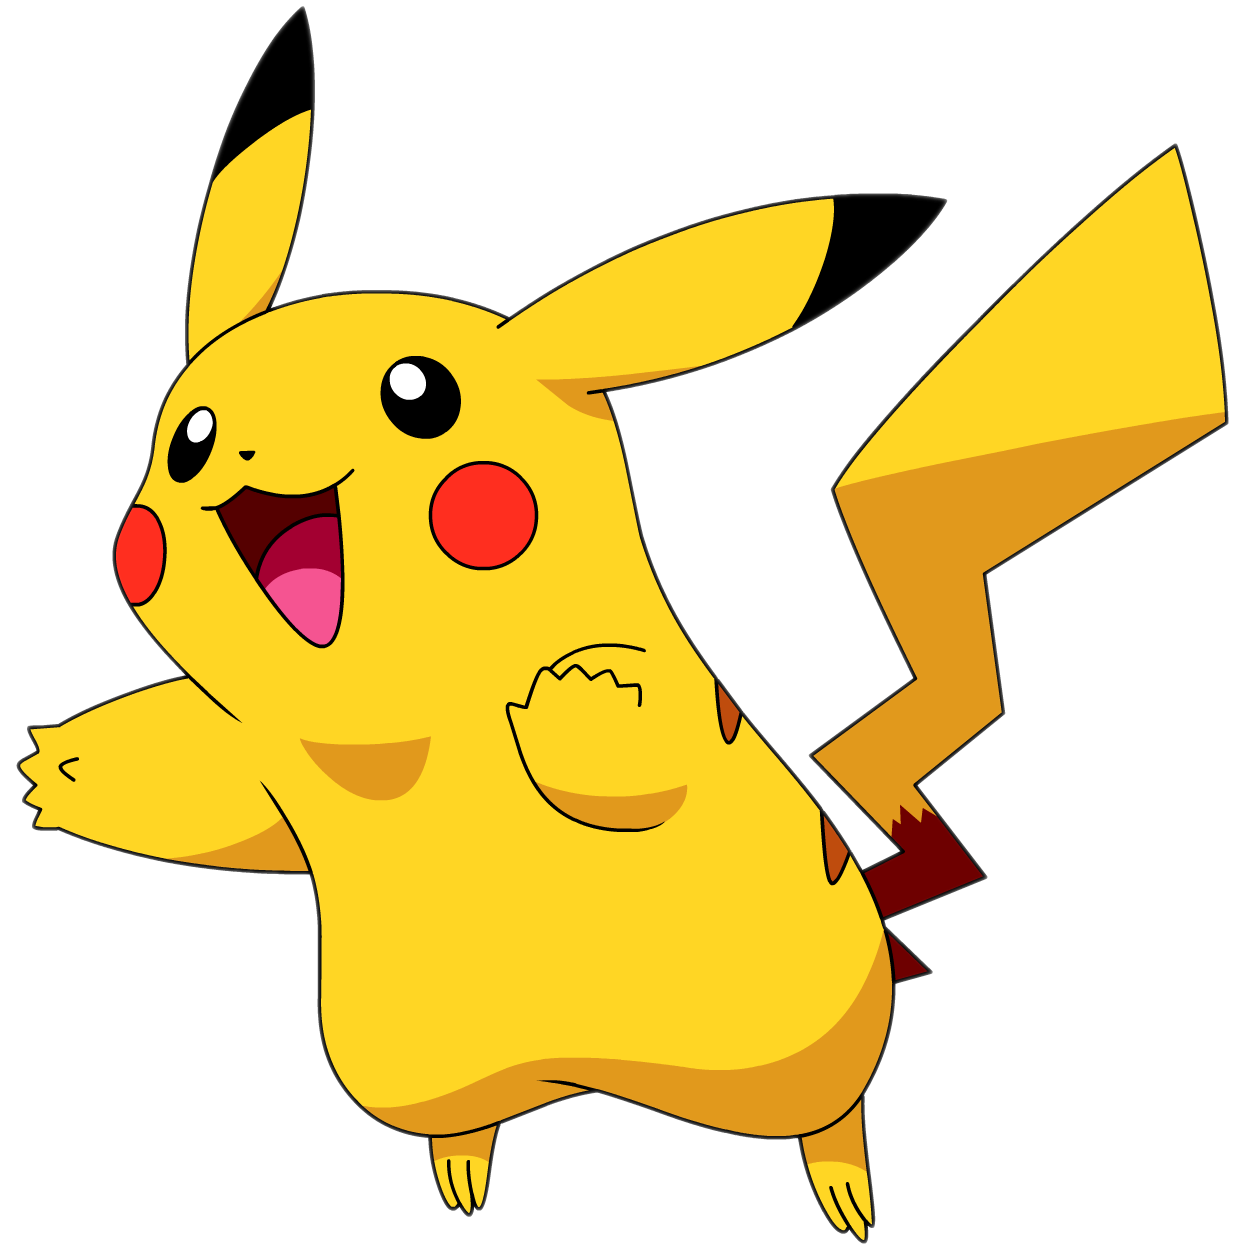 Google themes pikachu - Find Here More Than 10 000 Unique Coloring Pages That You Can Print Out Or Color Online Super Heros Princesses Christmas Easter And Many More Themes